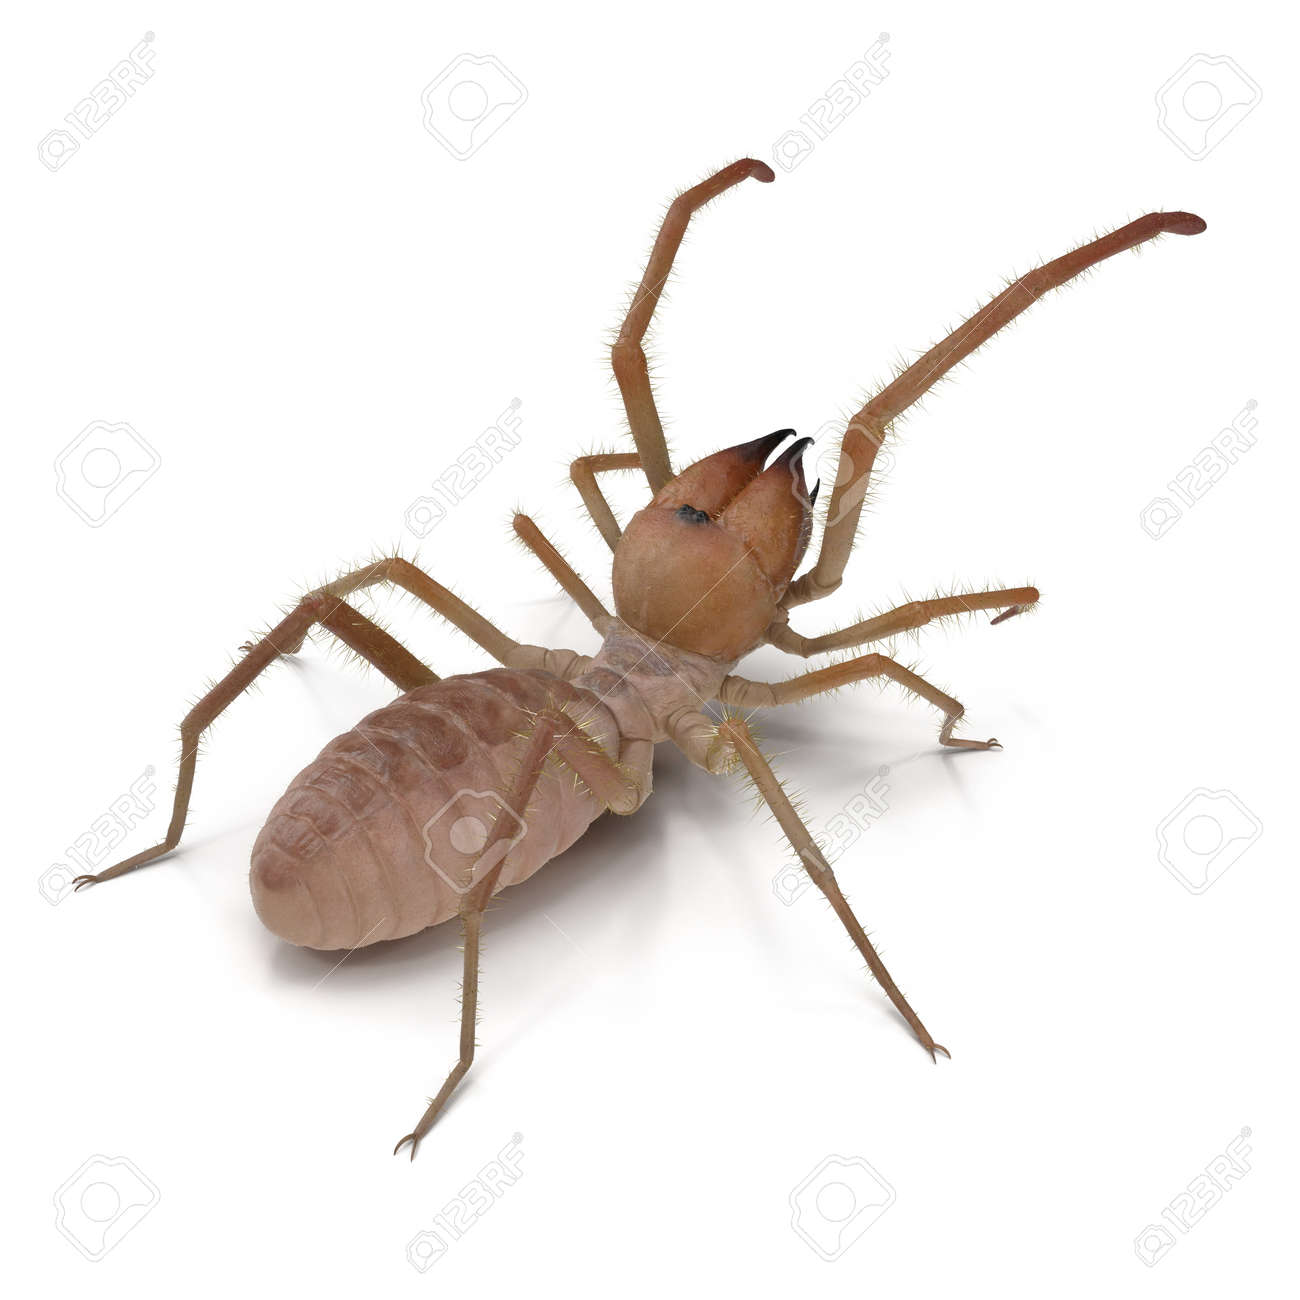 120590581-solifugae-or-camel-spider-with